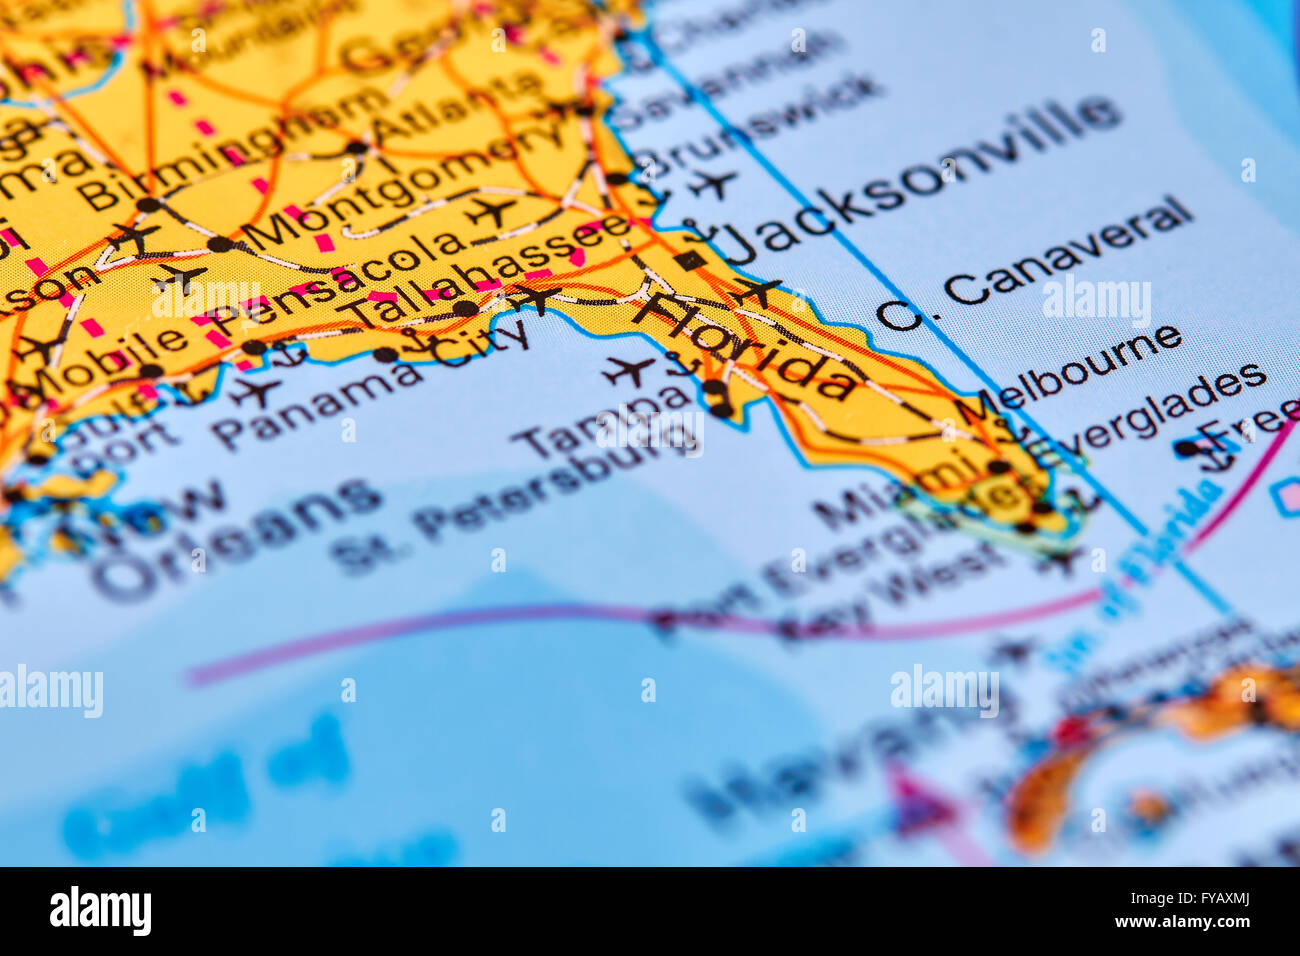 Florida On The World Map.Florida State In Usa On The World Map Stock Photo 102888034 Alamy